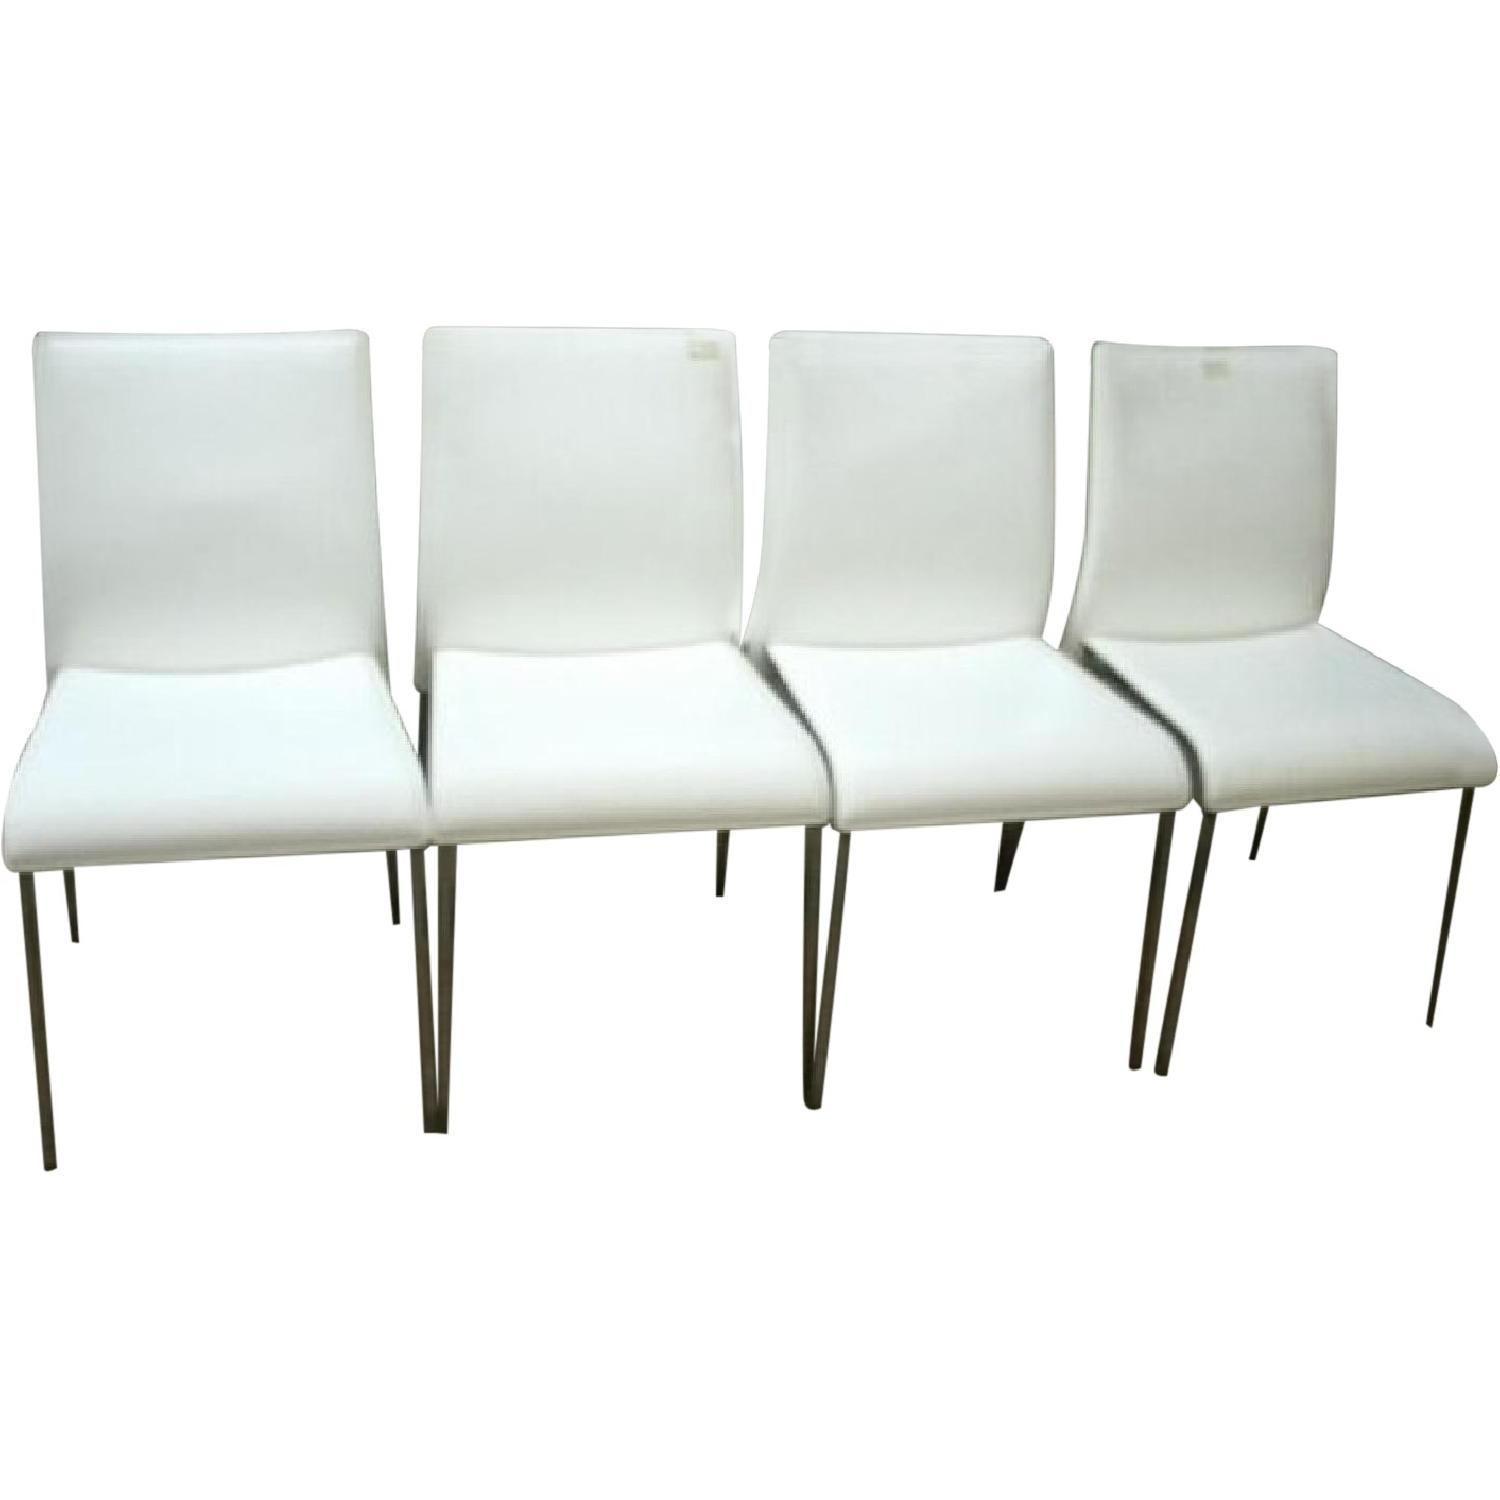 Chairs dining chairs in white leather w metal legs for White leather dining chairs